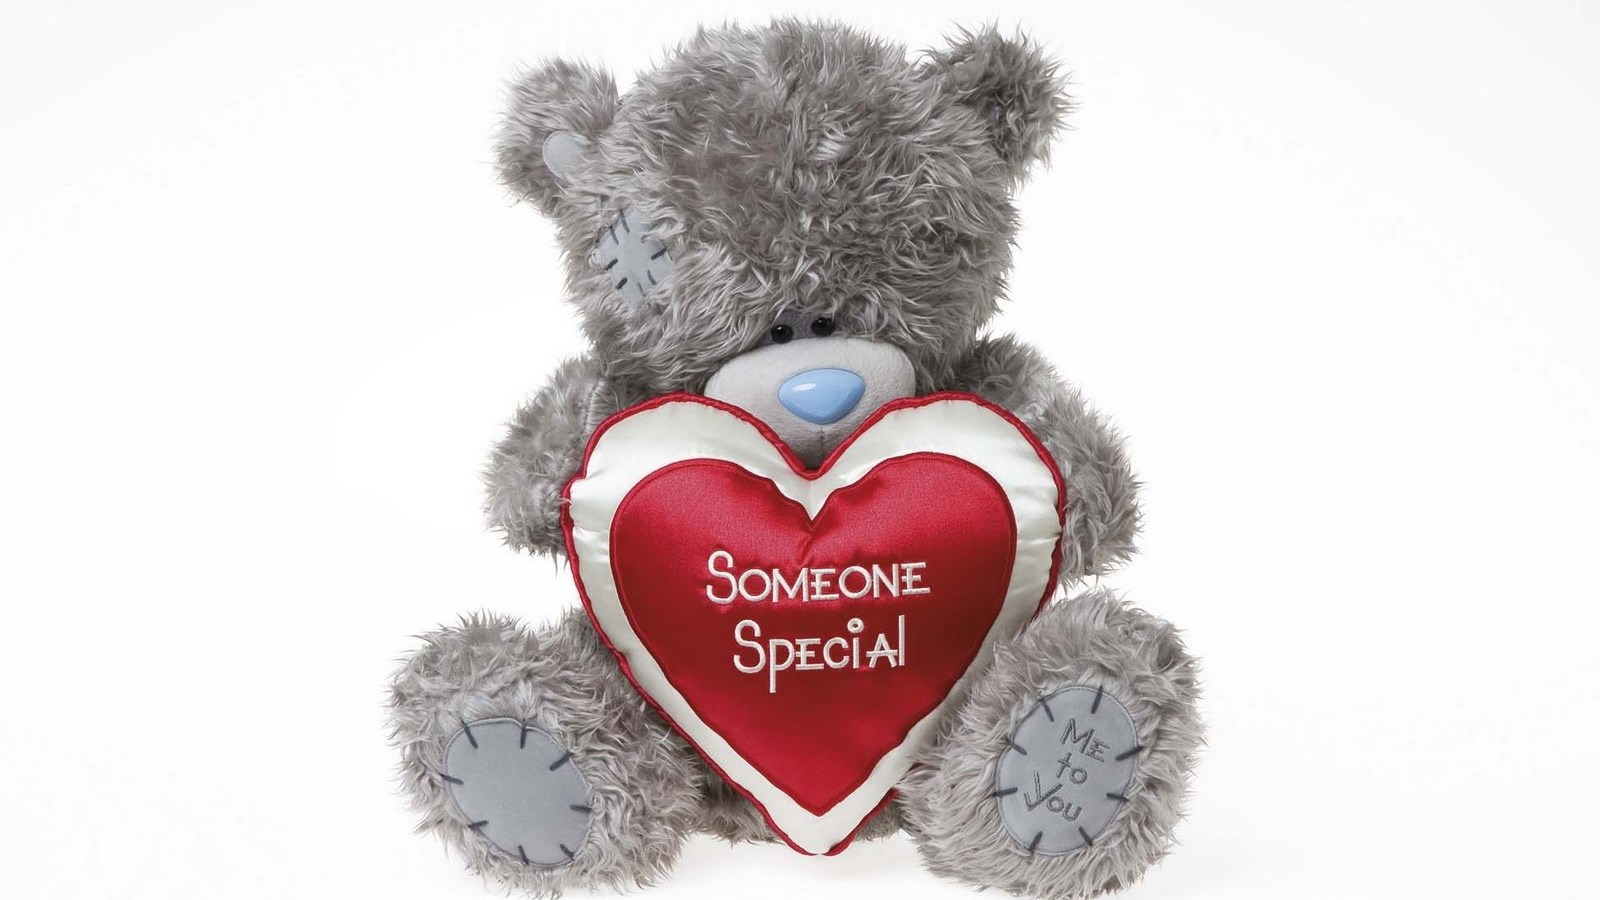 Wallpapers pictures photos tatty teddy bear pictures desktop background popular thecheapjerseys Image collections